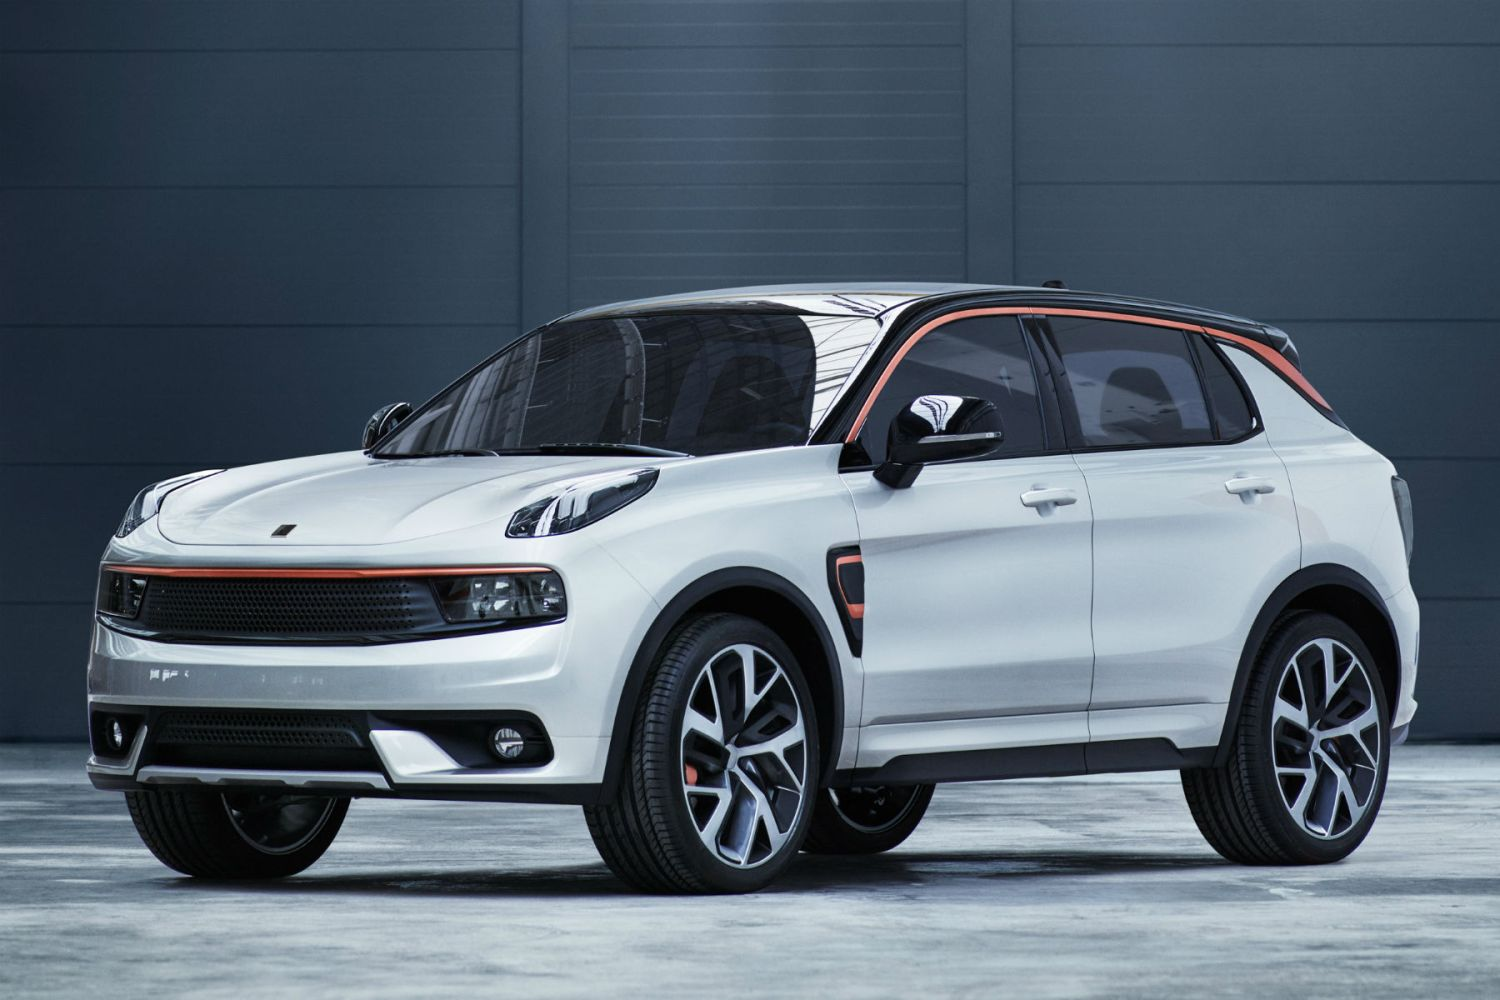 The Lynk & Co 01